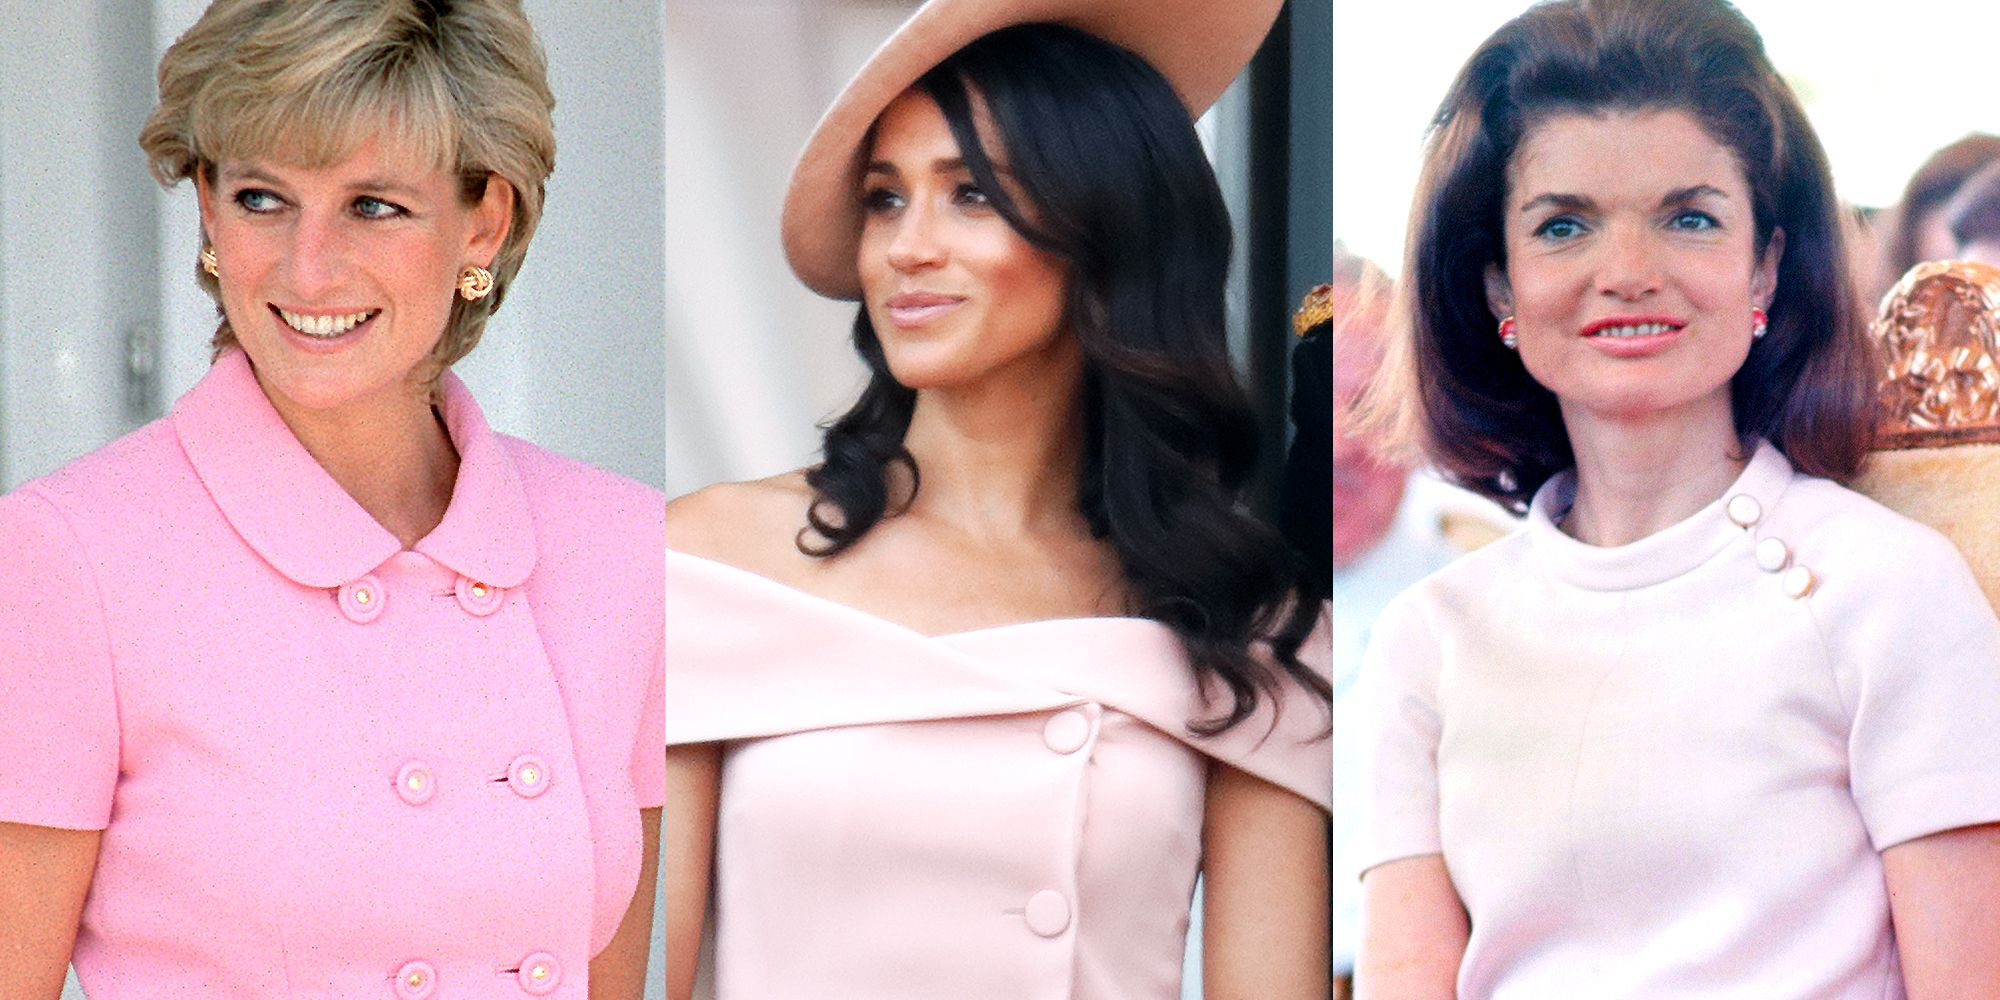 Why Meghan Markle Has Looked to Princess Diana and Jackie Kennedy for Fashion Inspiration